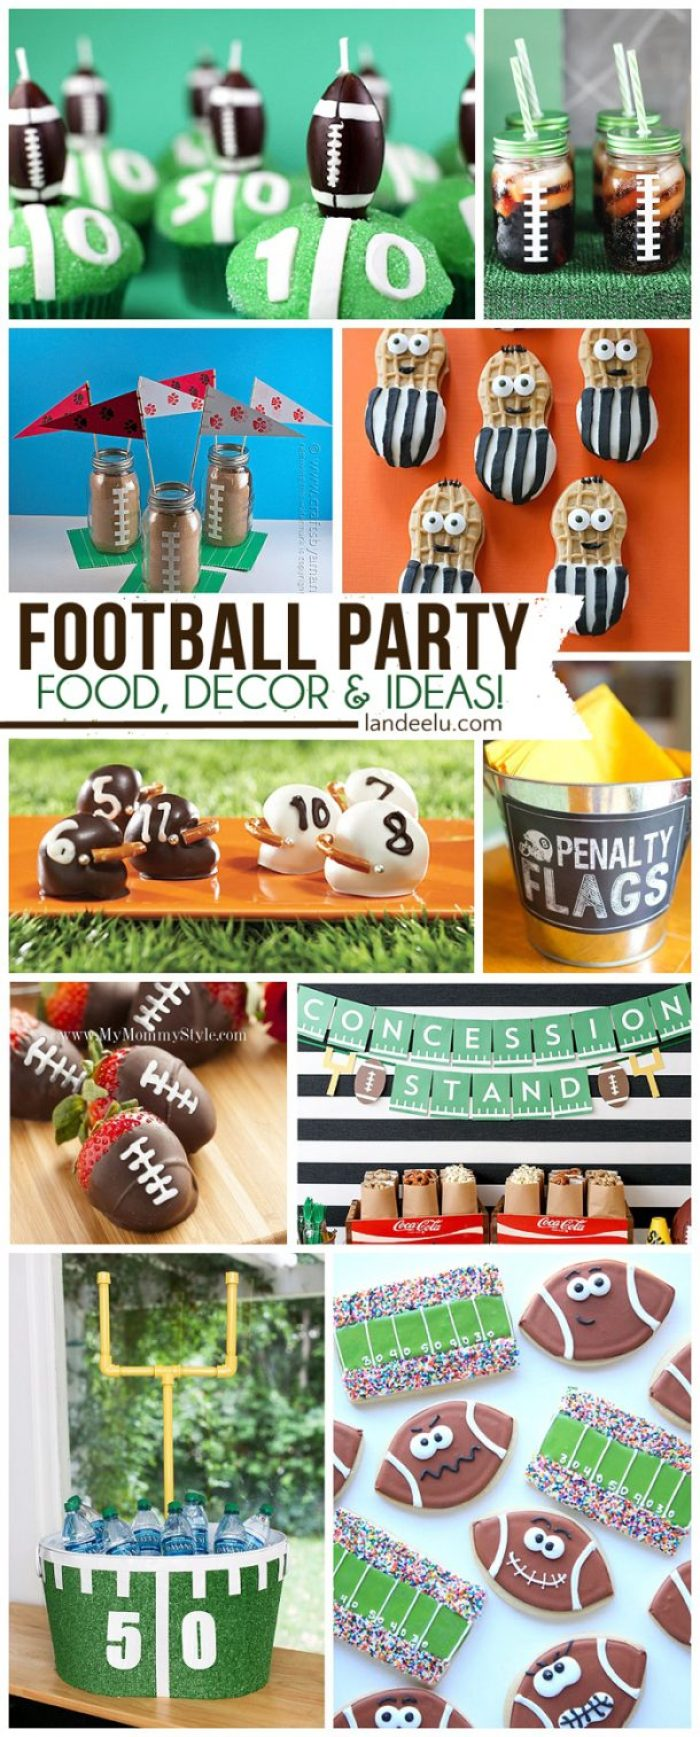 Football Party Food, Decorations and more great ideas!